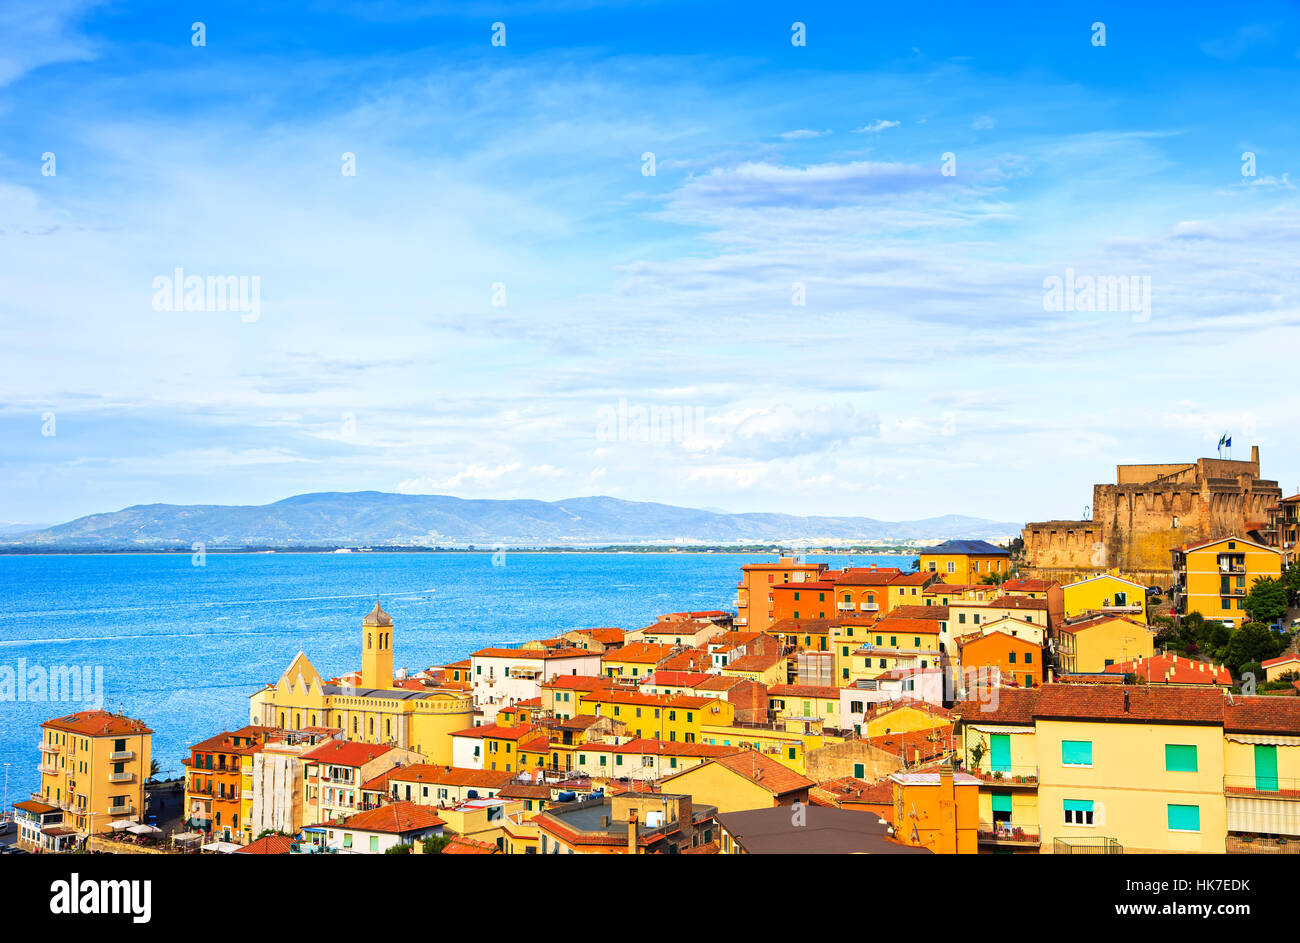 Porto Santo Stefano village, church and castle aerial view, italian travel destination. Monte Argentario, Tuscany, - Stock Image